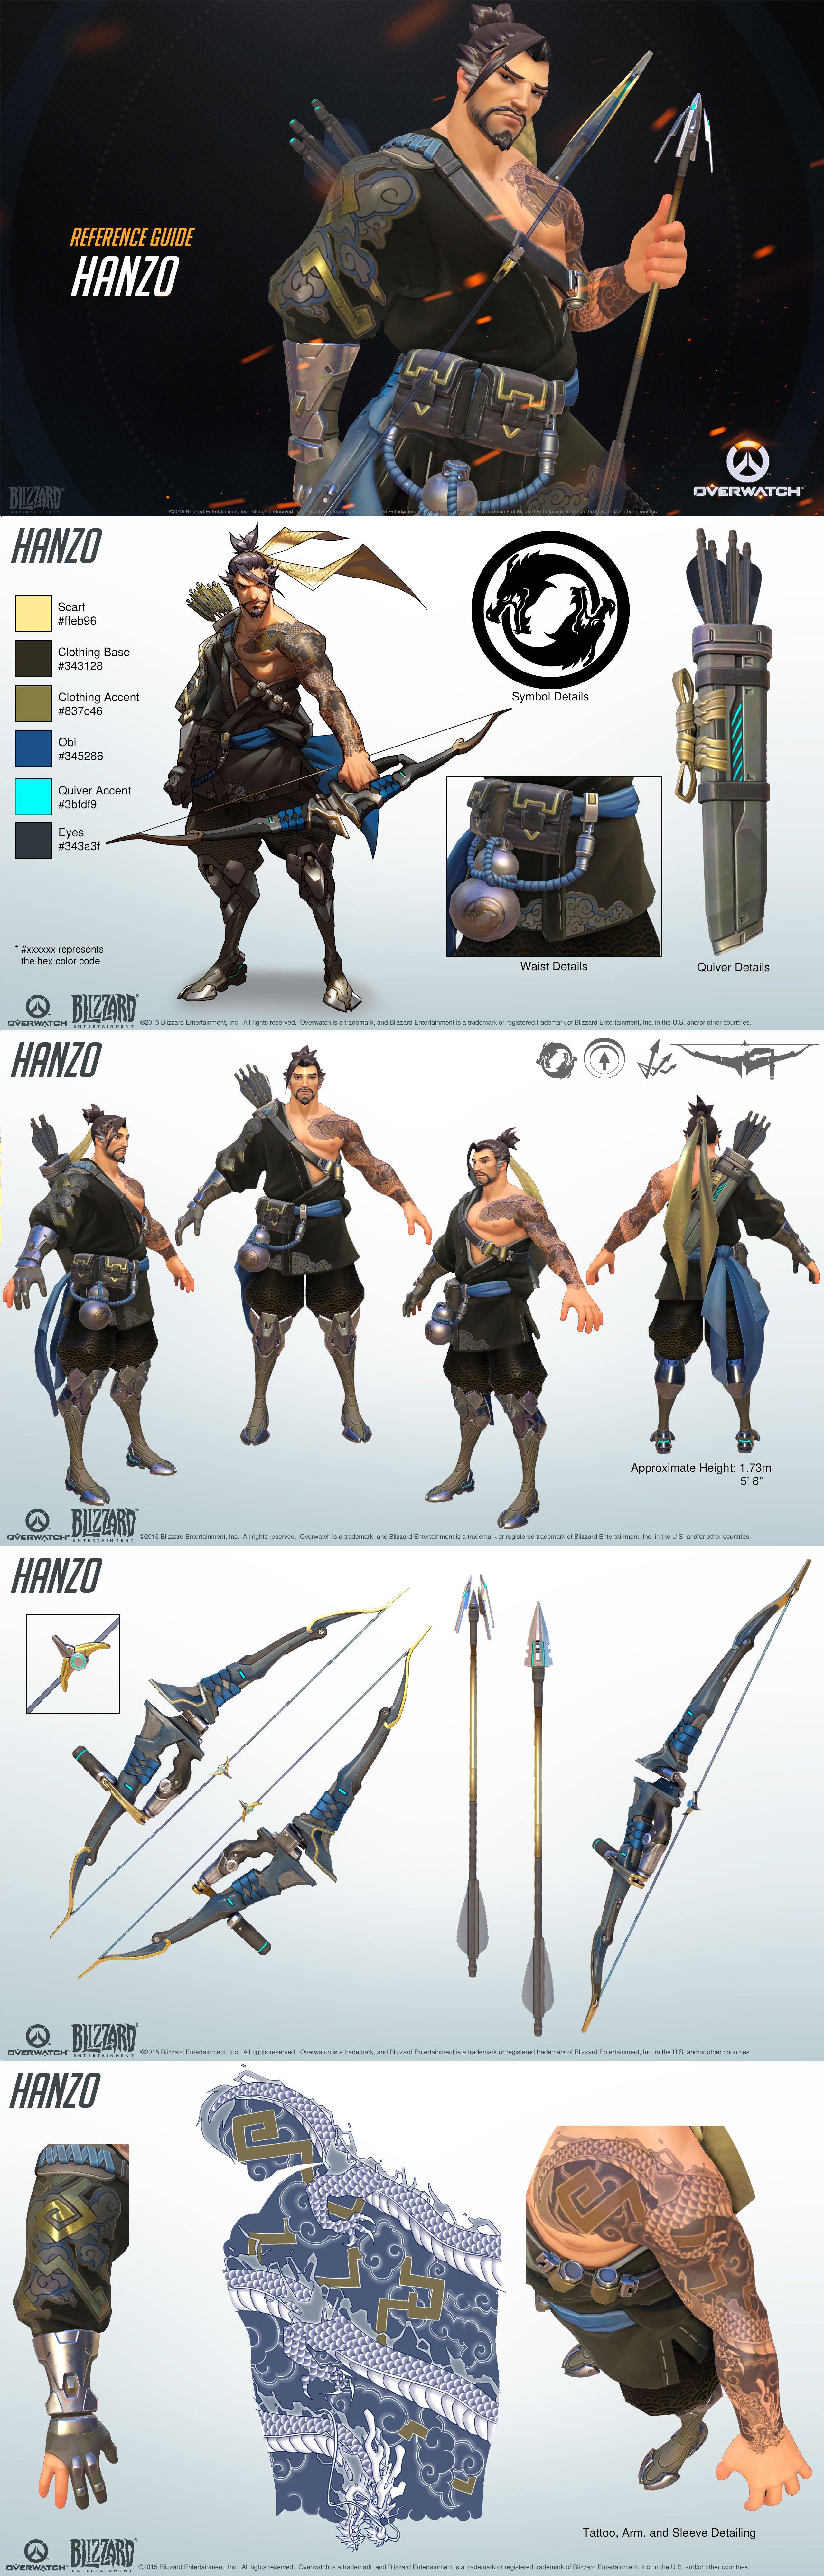 Exploring Character Design Pdf : Overwatch hanzo reference guide character designs